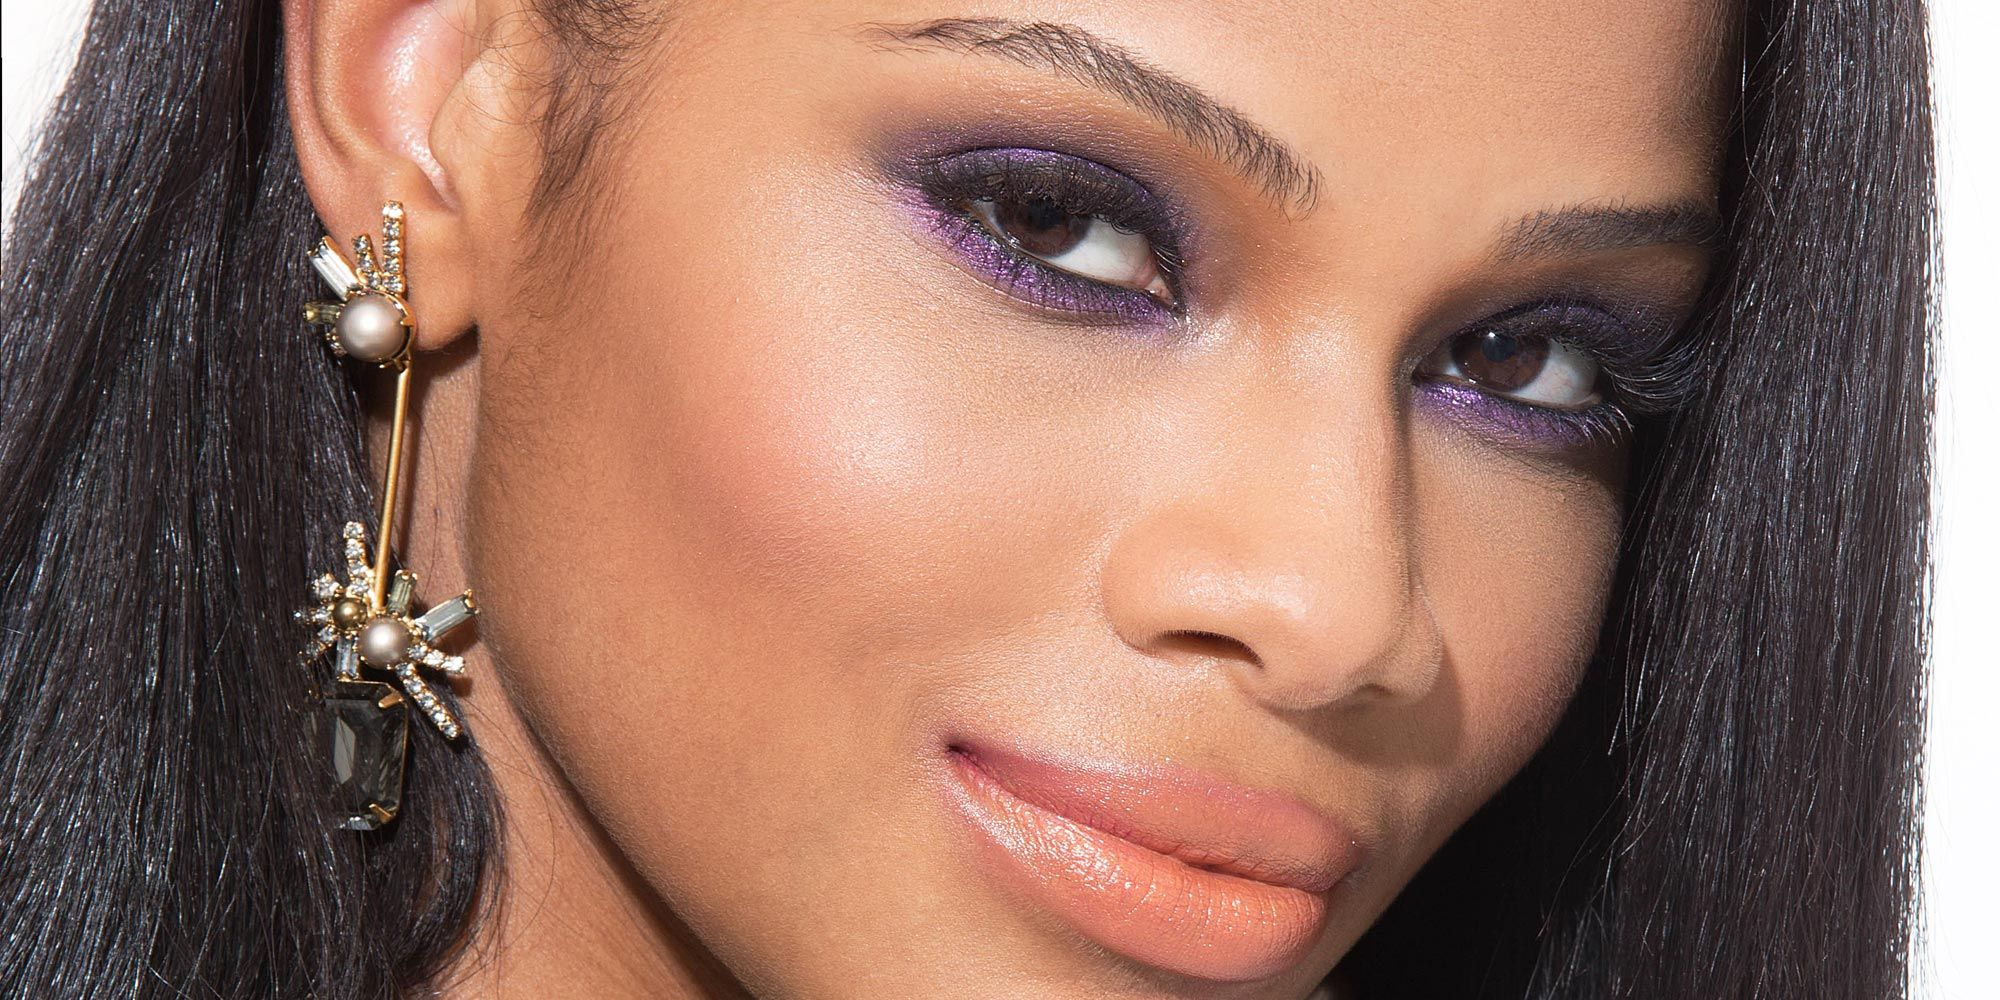 8 Makeup Looks You Should Wear To Prom Based On Your Dress